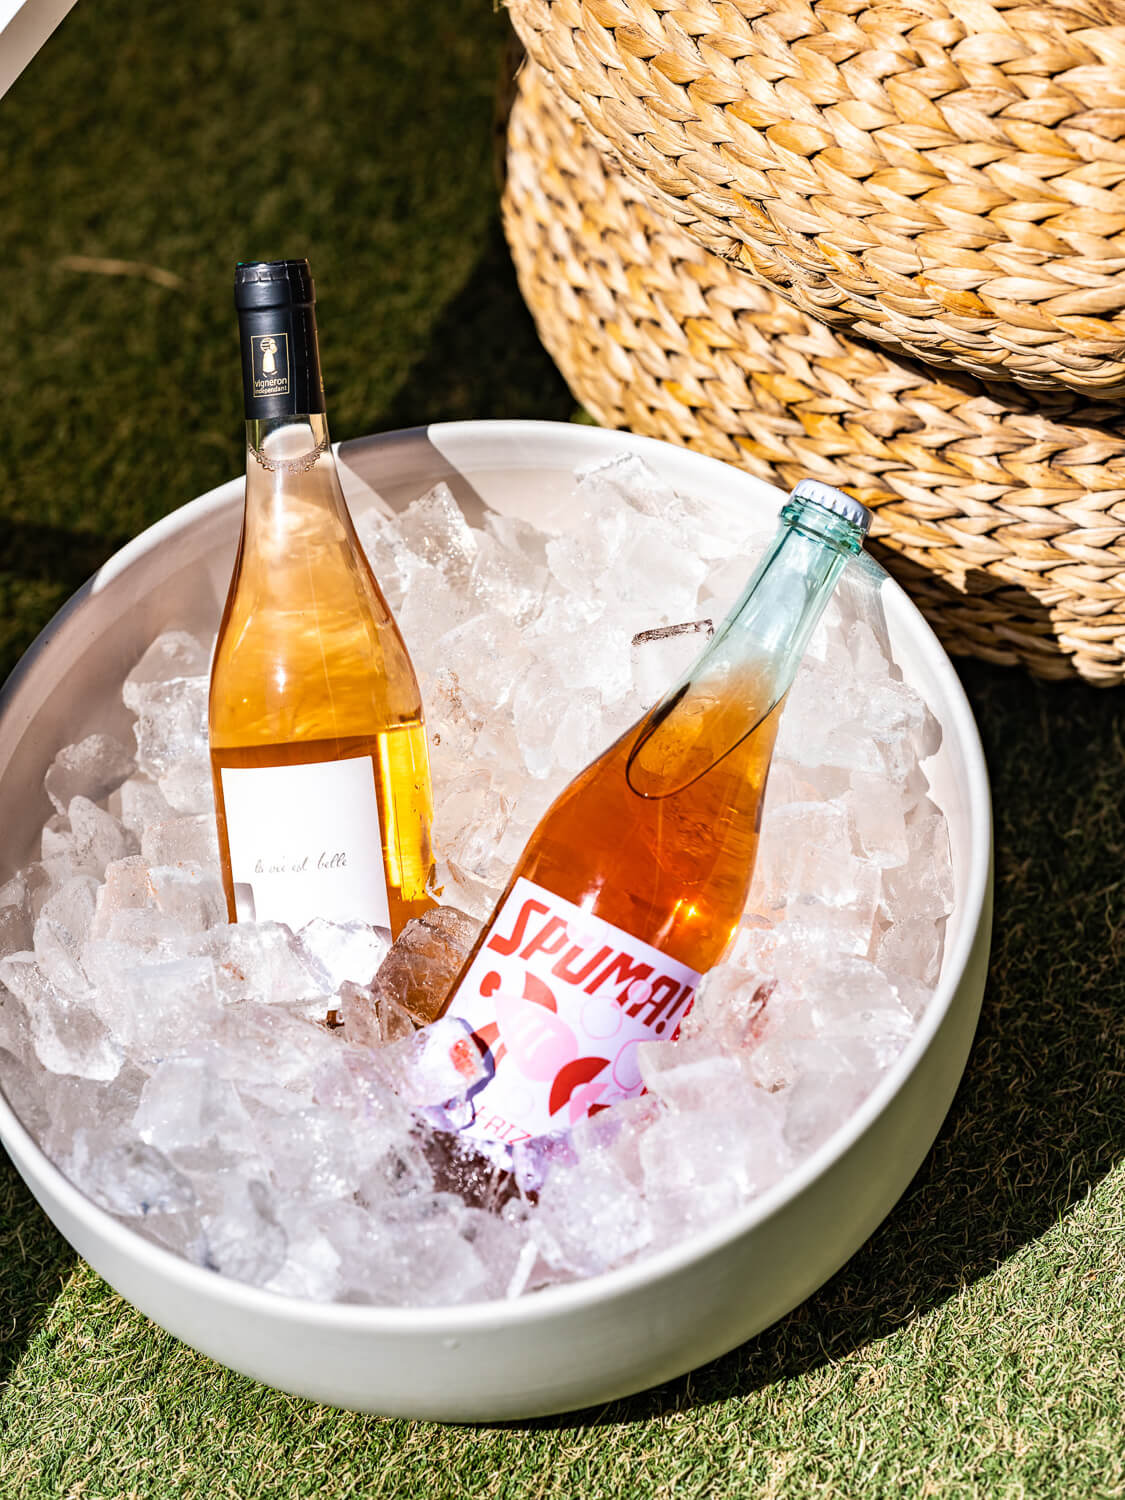 Two bottles of rose wine from Dry Farms Wine in an ice bucket.